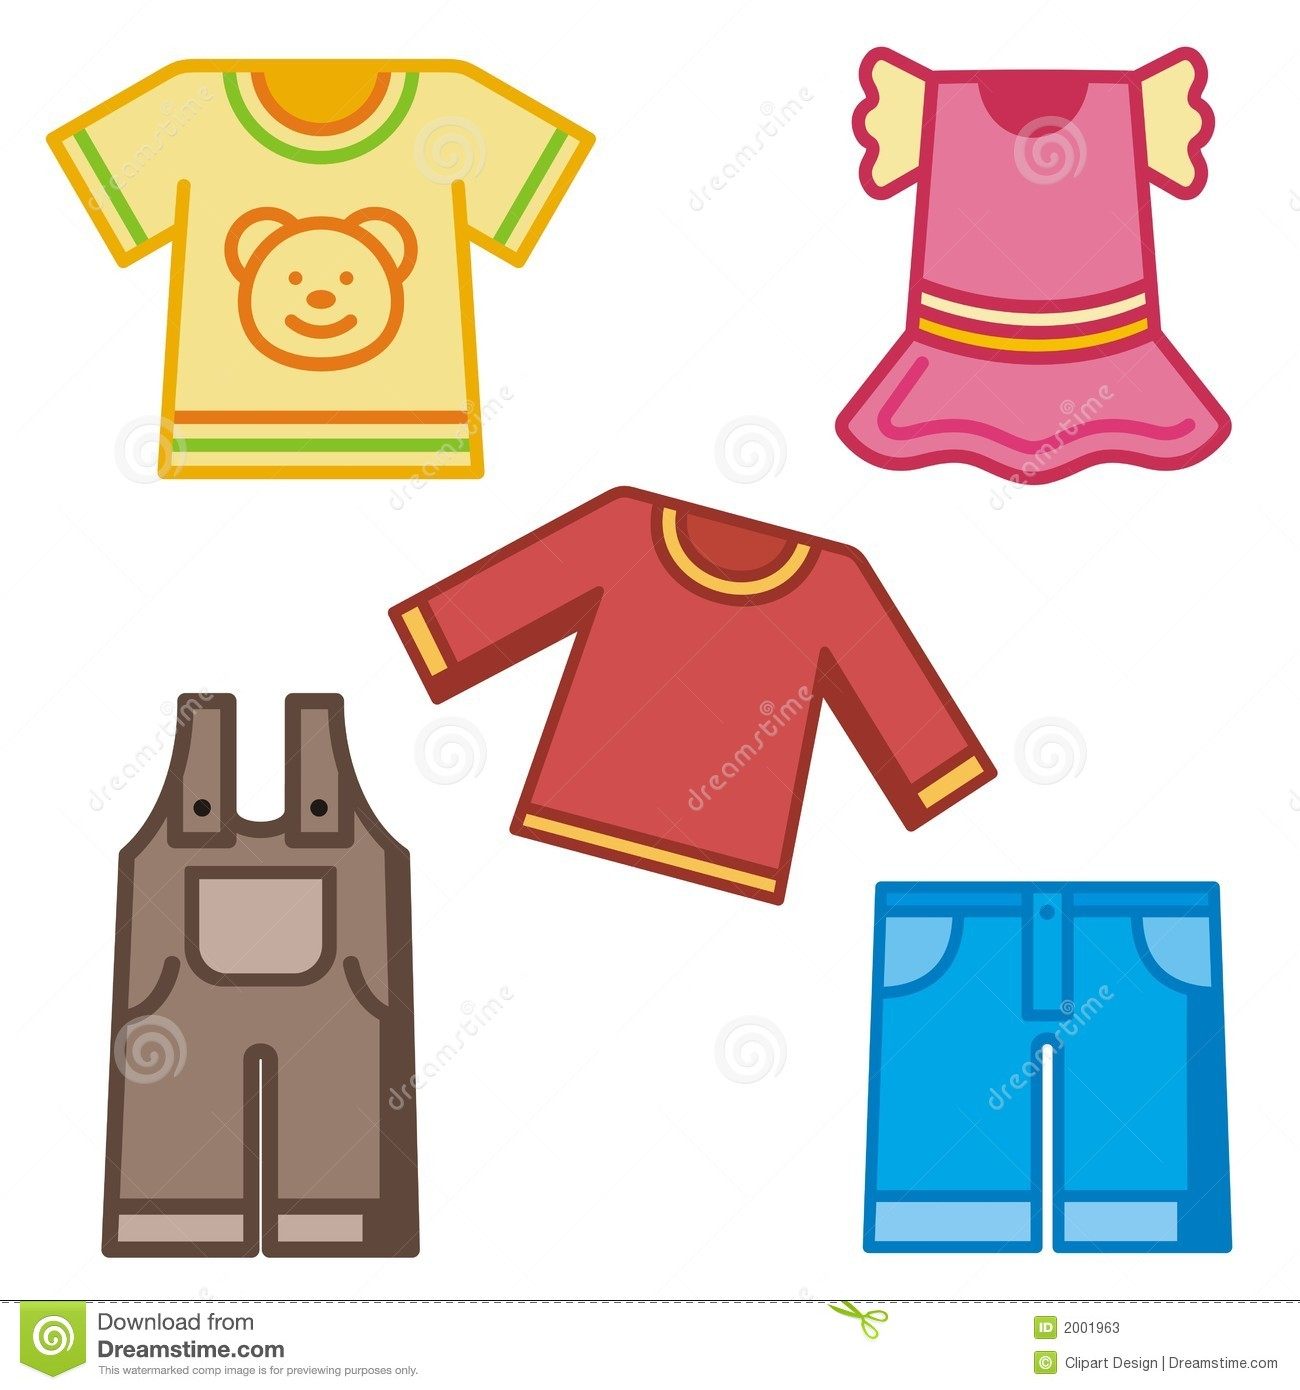 Fall clothes clipart clipart royalty free library Best Clothes Clipart #17447 - Clipartion.com clipart royalty free library